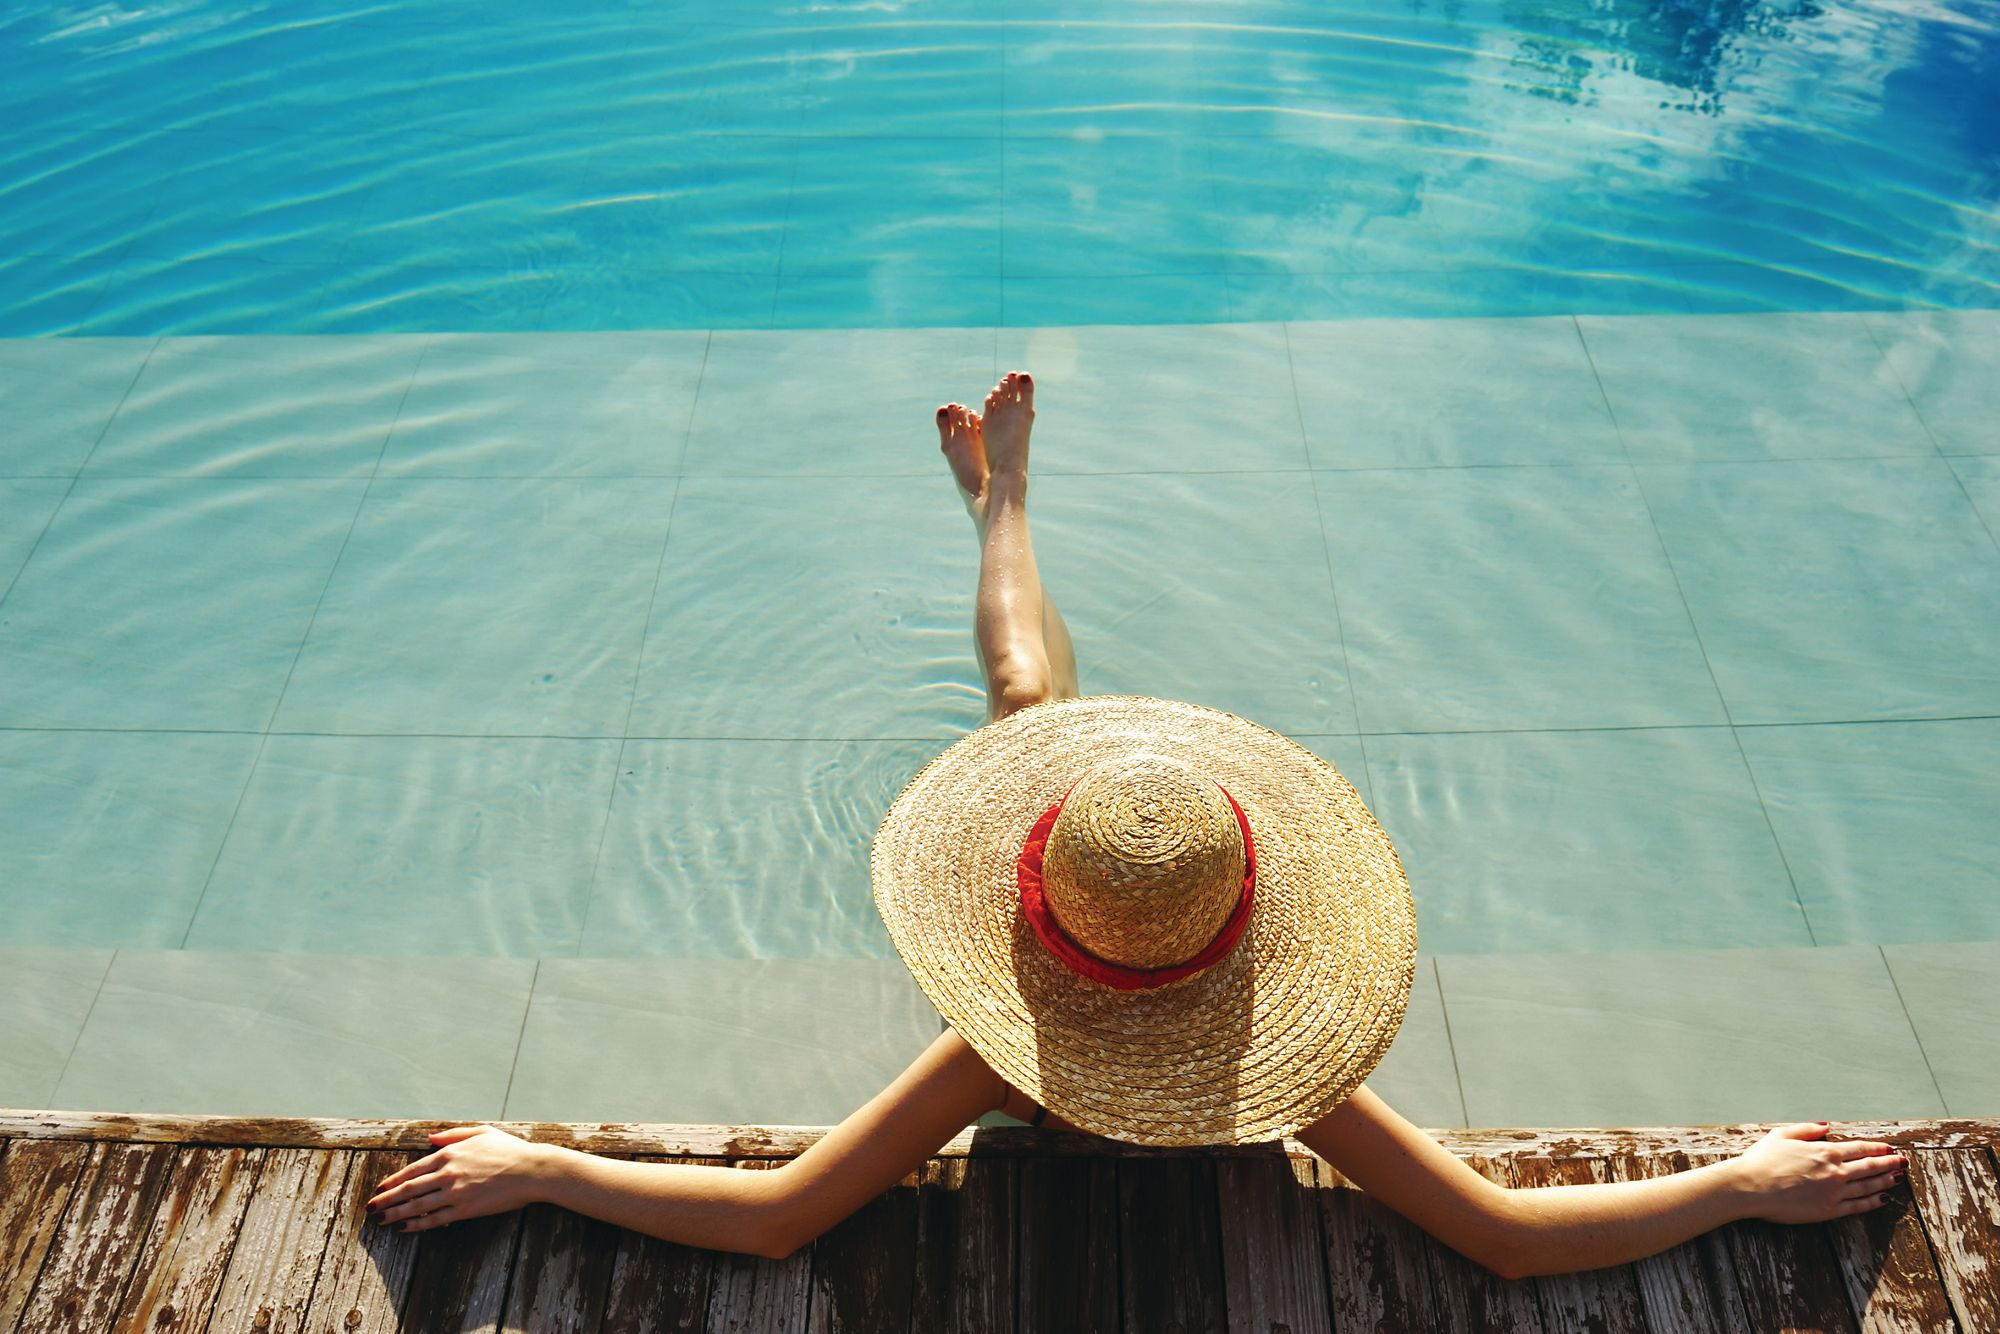 Woman wearing a straw hat sunbathes in a clear, outdoor pool